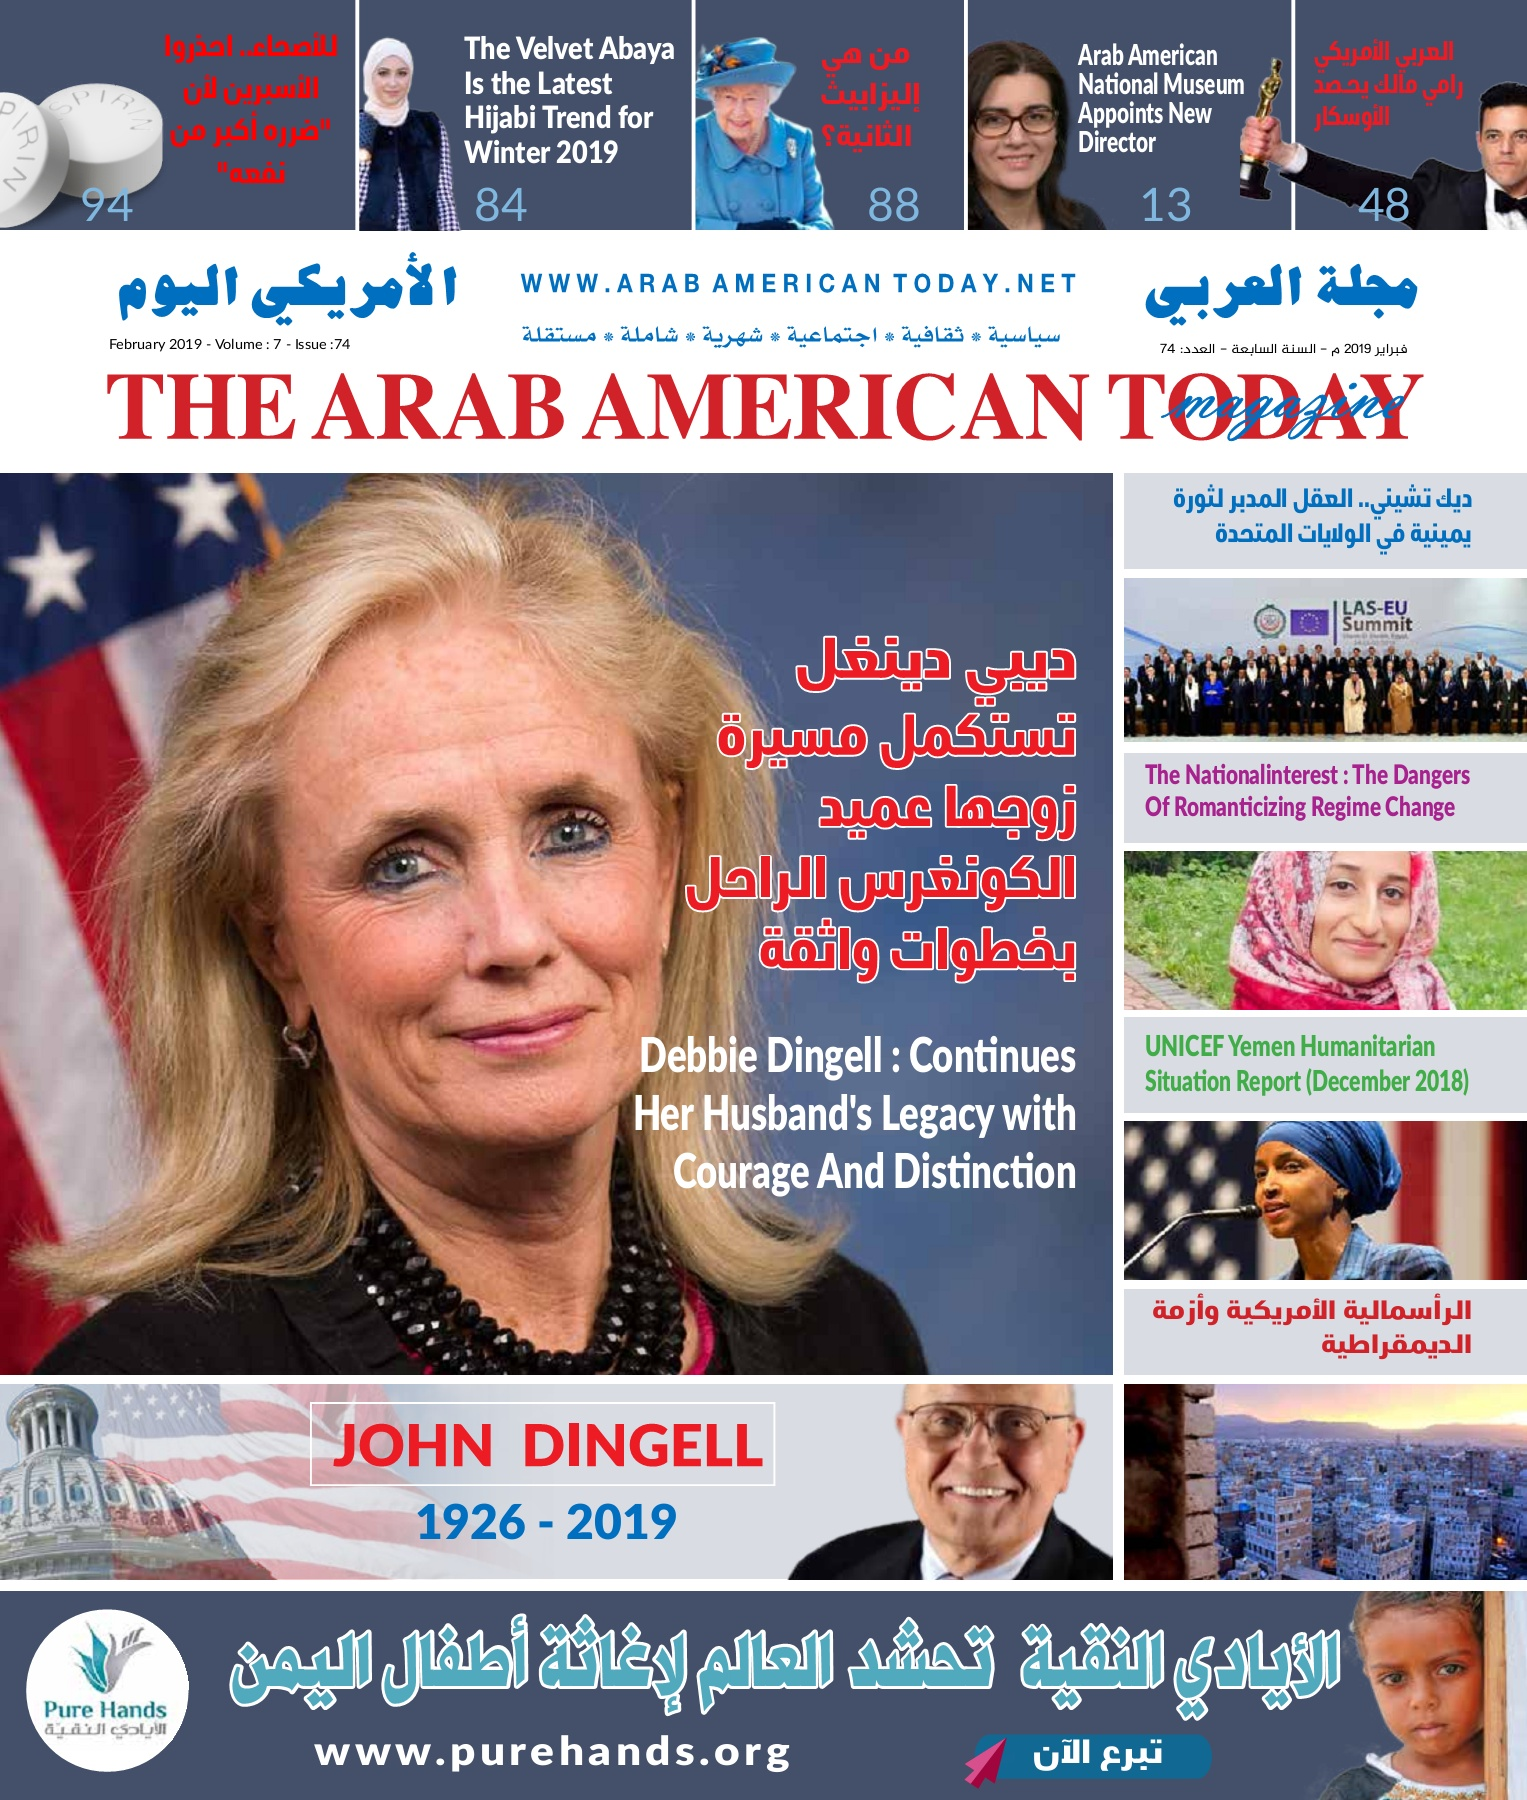 24d31f261 THE ARAB AMERICAN TODAY Pages 51 - 100 - Text Version | AnyFlip